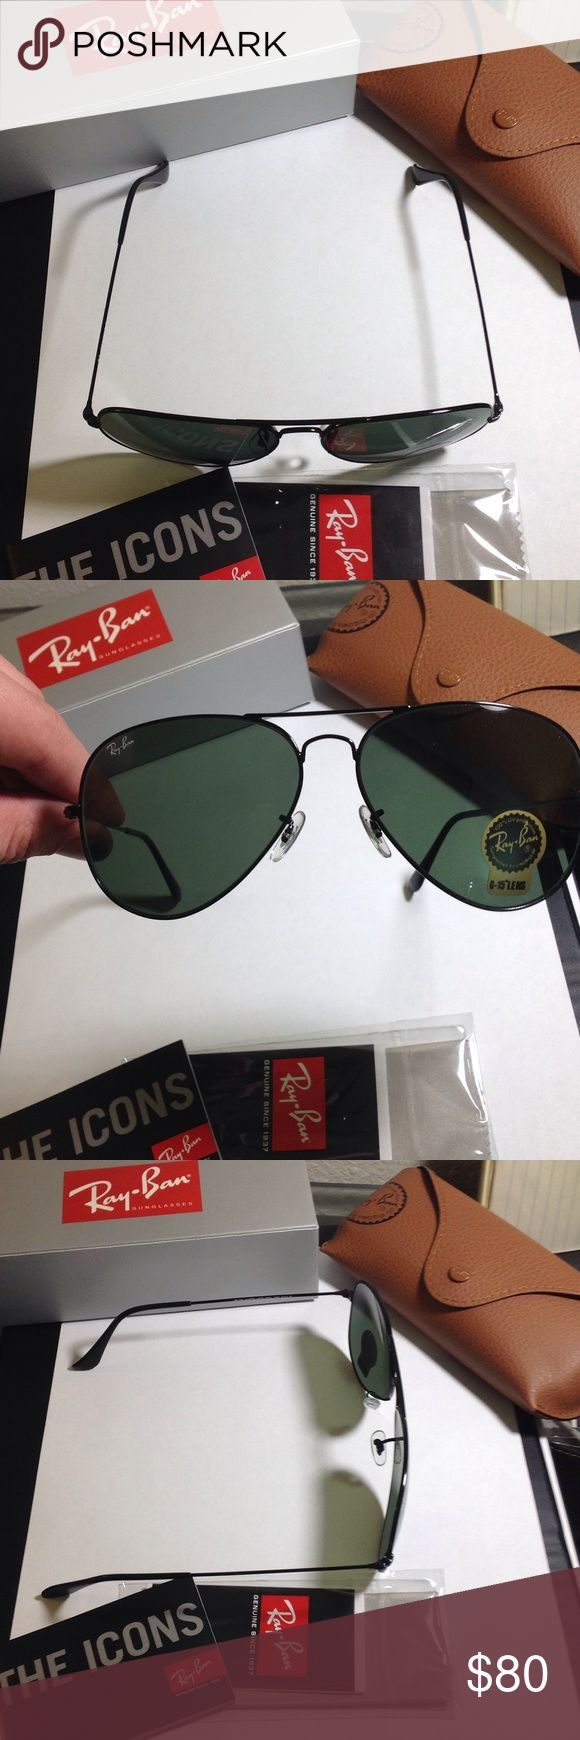 Ray-Ban 3026 L2821 Aviator, 62-mm, Black Large Imported RAY BAN 3026 AVIATOR BLACK FRAME RB 3026 L2821 62mm GREEN G-15 SUNGLASSES LARGE Condition: New with tags: A brand-new, unused, and unworn item (including handmade items) in the original packaging Gender: Unisex Protection: 100% UV400 Brand: RAY BAN Lens Technology: G-15XLT Style: Aviator Country of Manufacture: Italy Frame Color: Black Made In: Italy Lens Color: GREEN G-15XLT Extra Light Weight Shipping to USA: Free Shipping To USA…